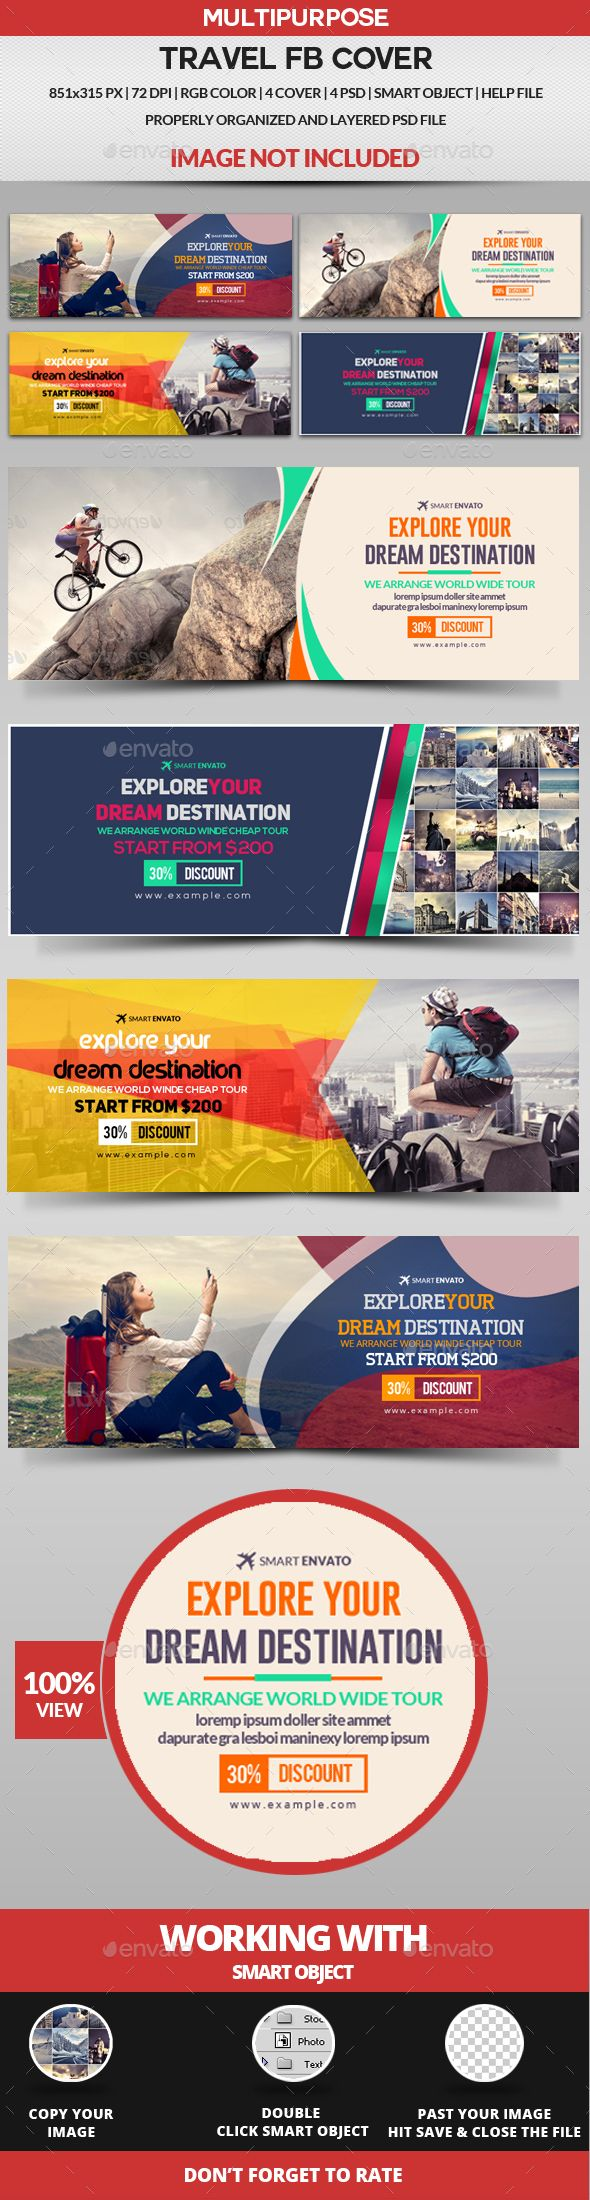 Travel Facebook Cover - 4 Design Templates PSD. Download here: http://graphicriver.net/item/travel-facebook-cover-4-design/16771970?ref=ksioks